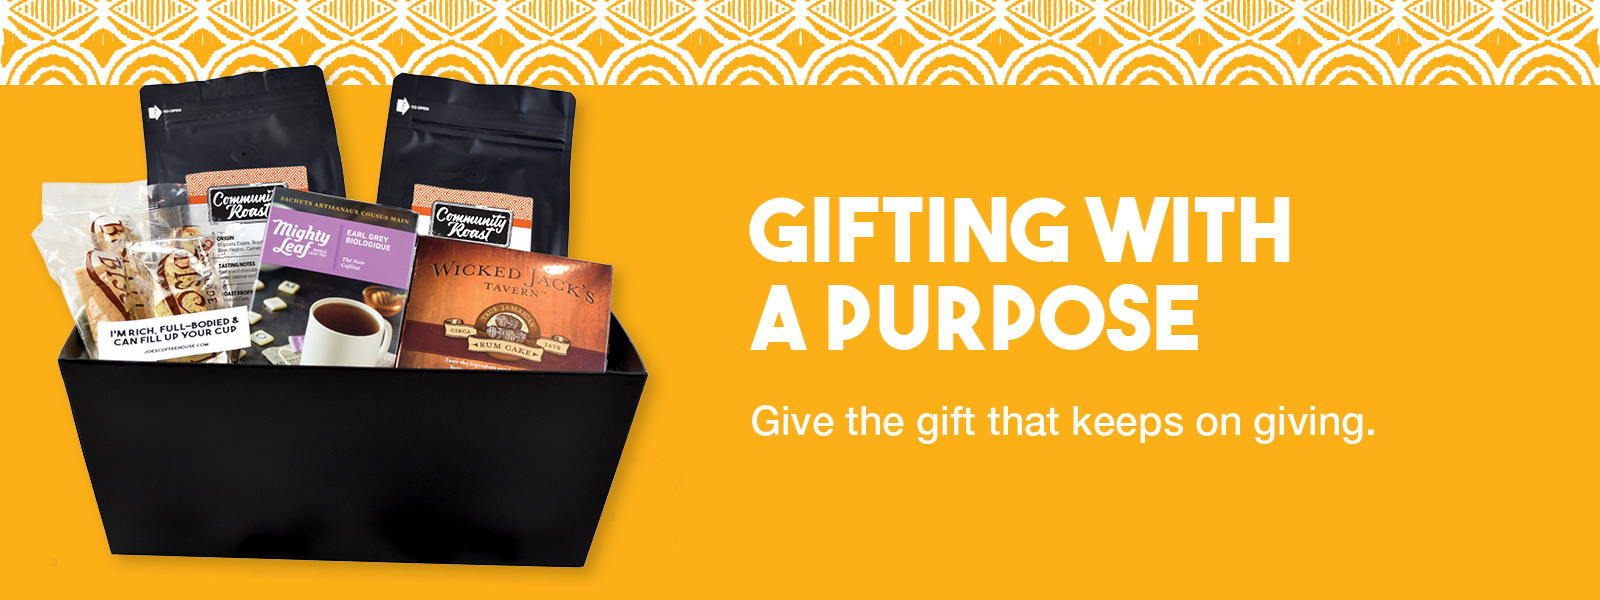 Give the gift that keeps on giving.